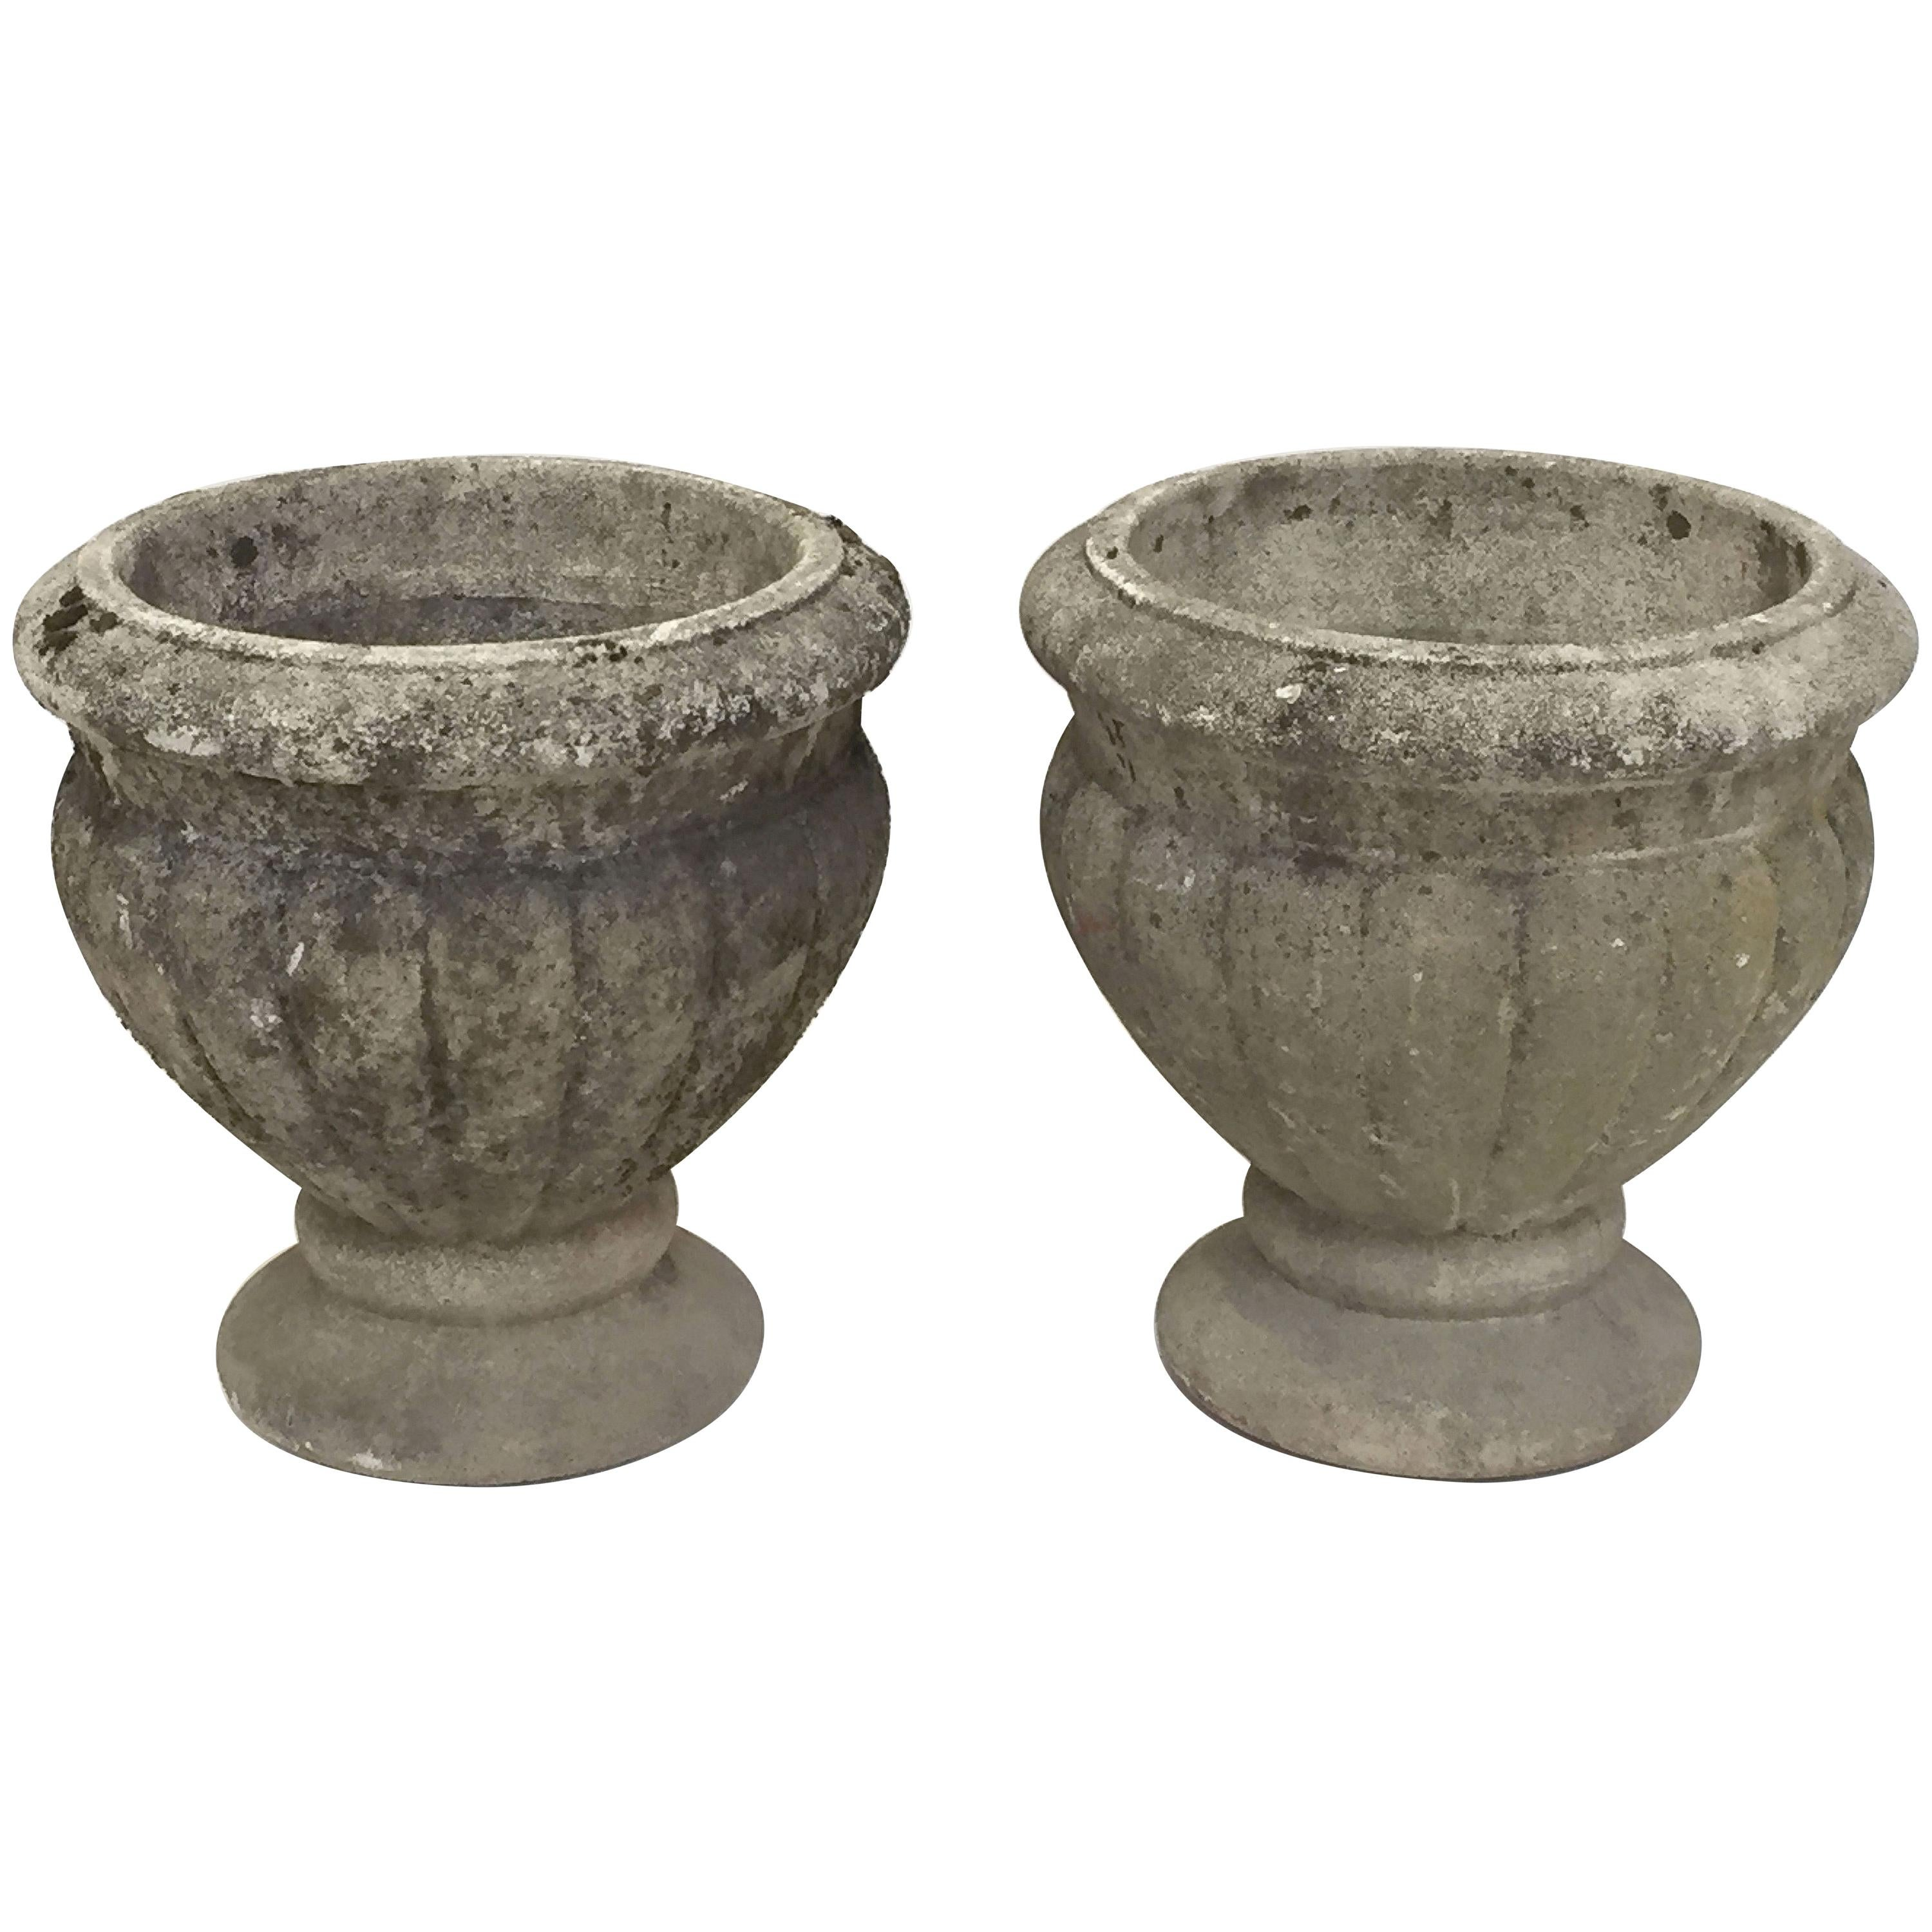 French Round Garden Stone Planters Or Urns U0027Individually Pricedu0027